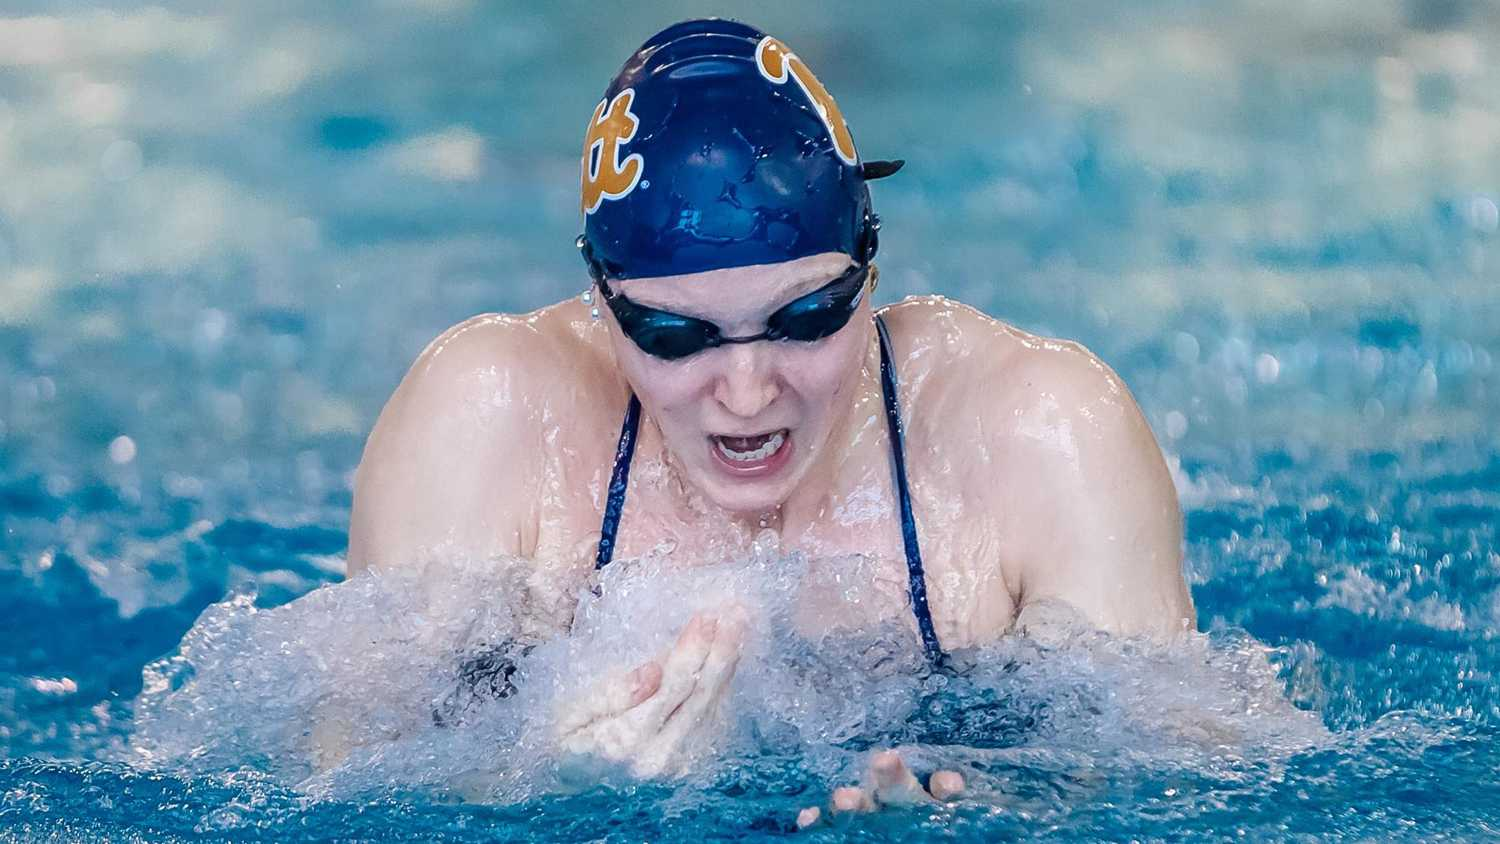 Senior swimmer Lina Rathsack earned silver in the 100-meter breaststroke at the ACC Women's Swimming Championship this weekend. (Photo courtesy of Pitt Athletics)